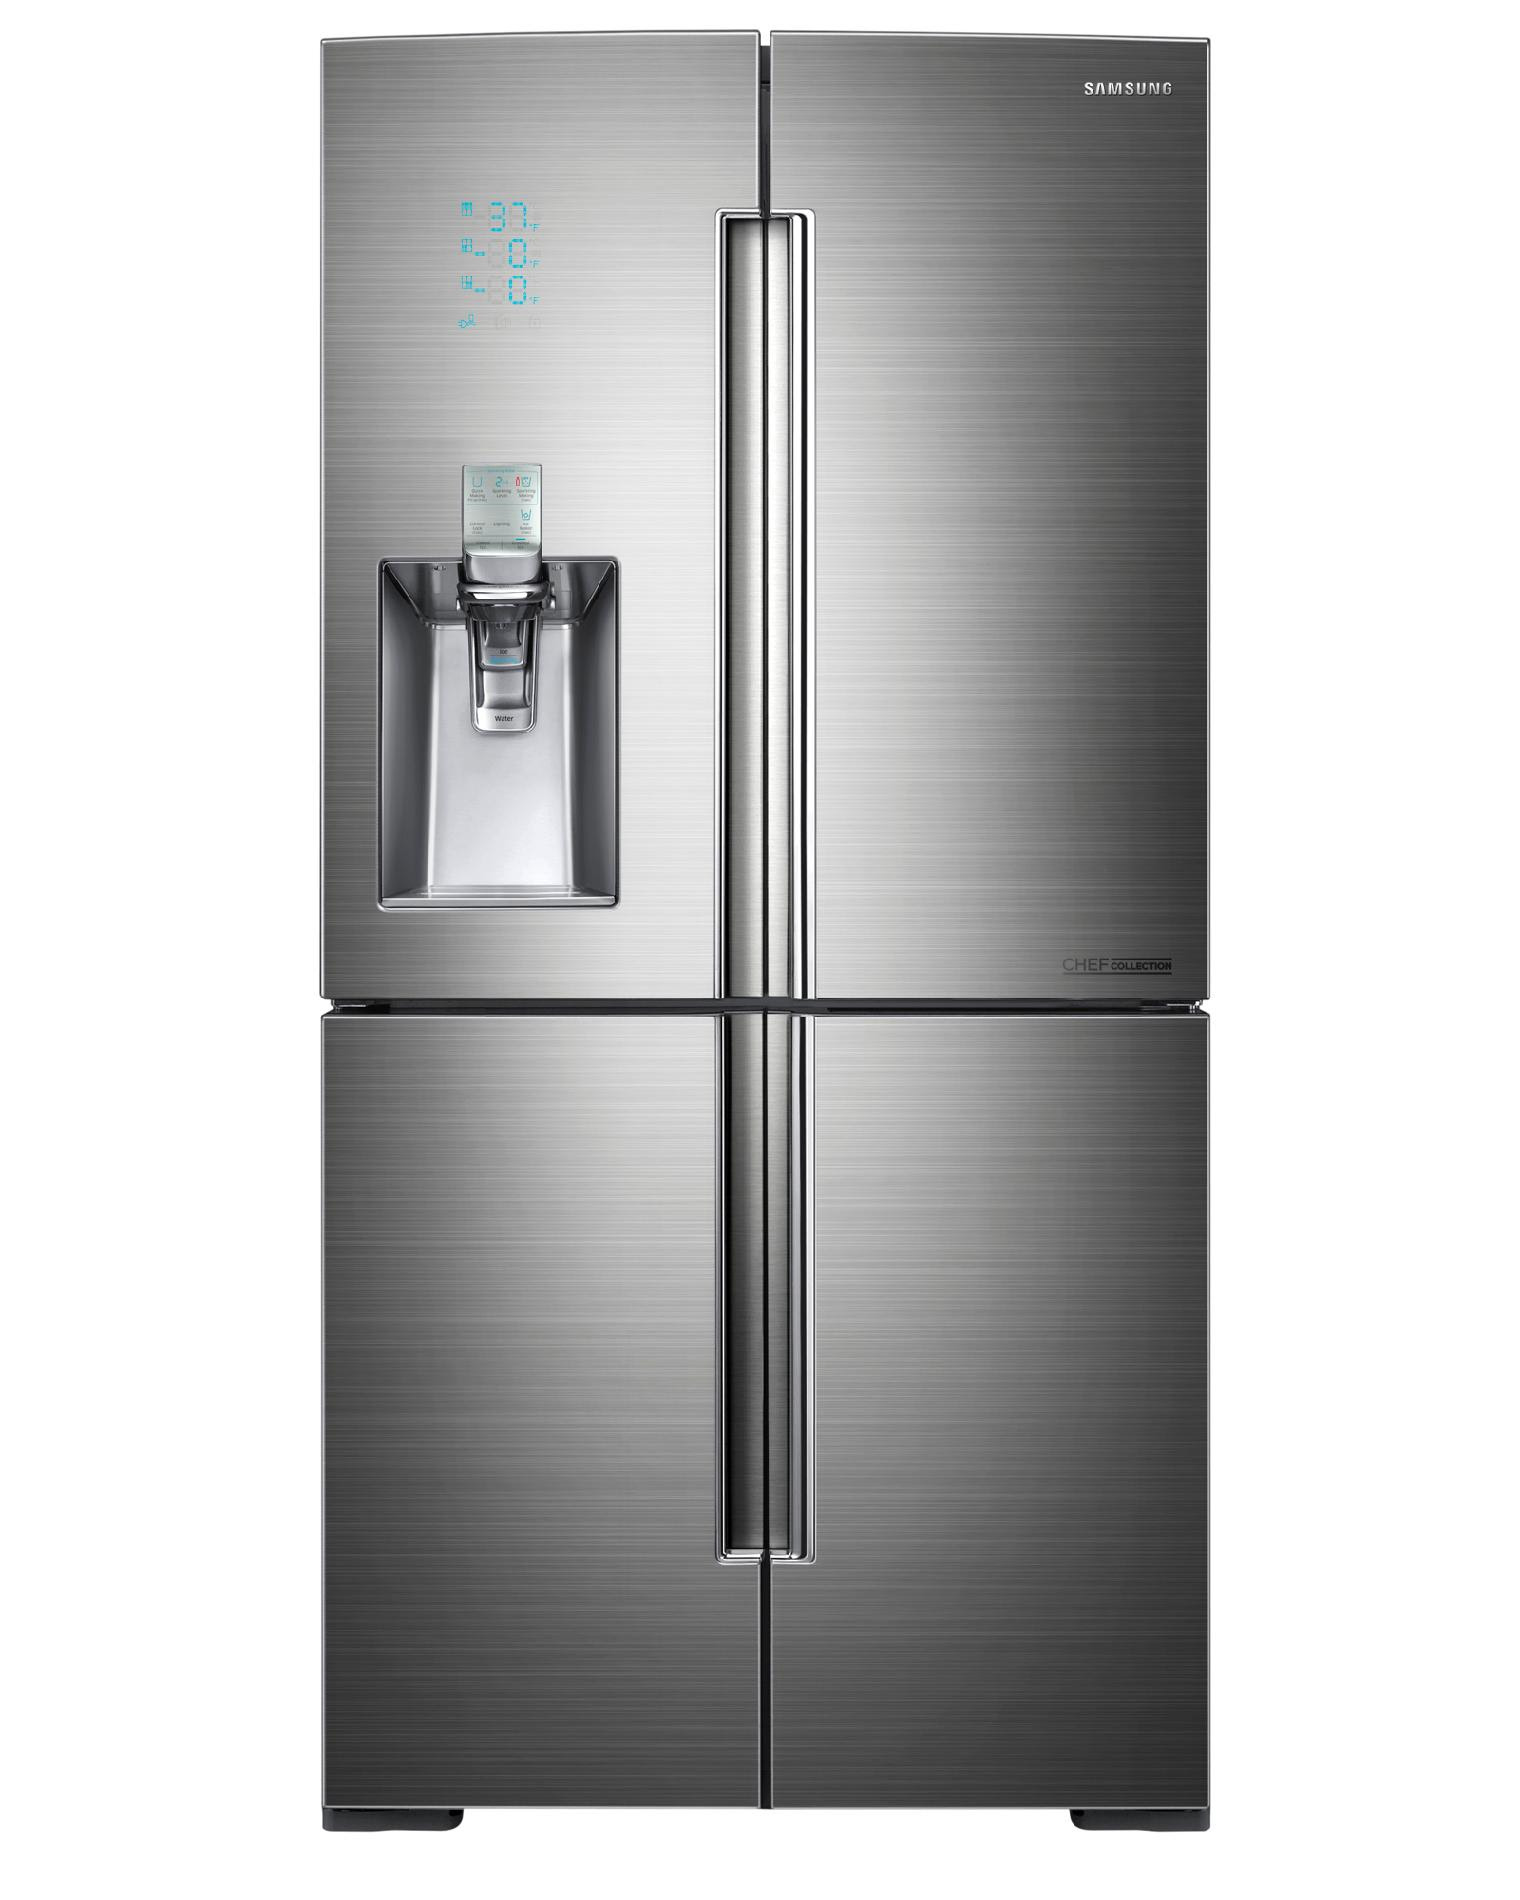 UPC Samsung 34 cu ft Chef Collection 4 Door French